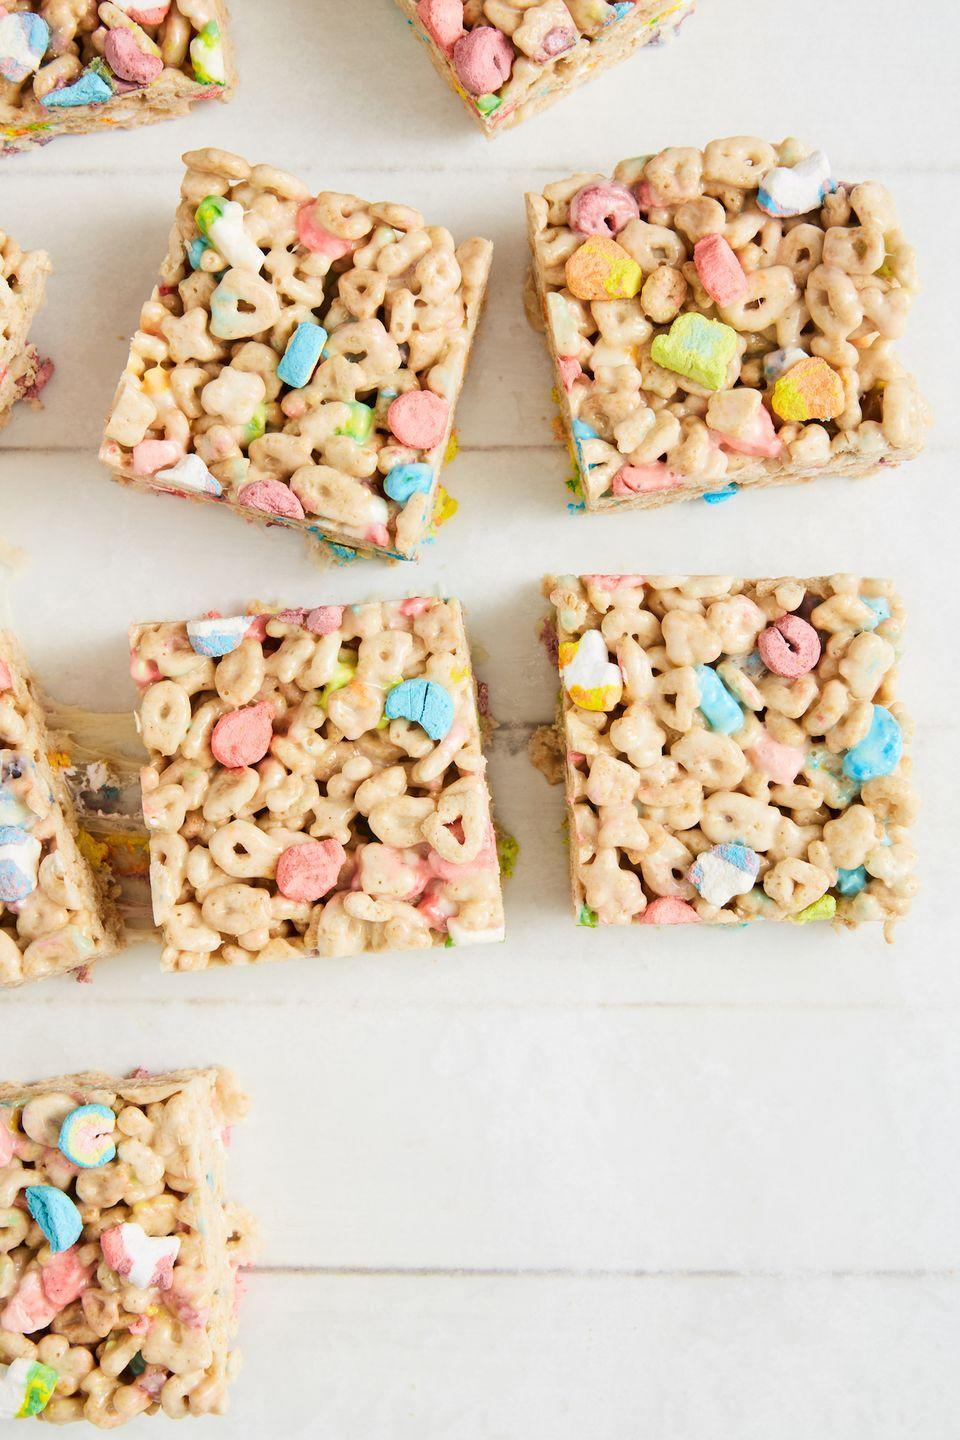 """<p>We spruce up your favorite treat with rainbow colors AND extra marshmallows. </p><p>Get the recipe from <a href=""""https://www.delish.com/cooking/recipe-ideas/a30982529/lucky-charms-marshmallow-treats-recipe/"""" rel=""""nofollow noopener"""" target=""""_blank"""" data-ylk=""""slk:Delish."""" class=""""link rapid-noclick-resp"""">Delish. </a></p>"""